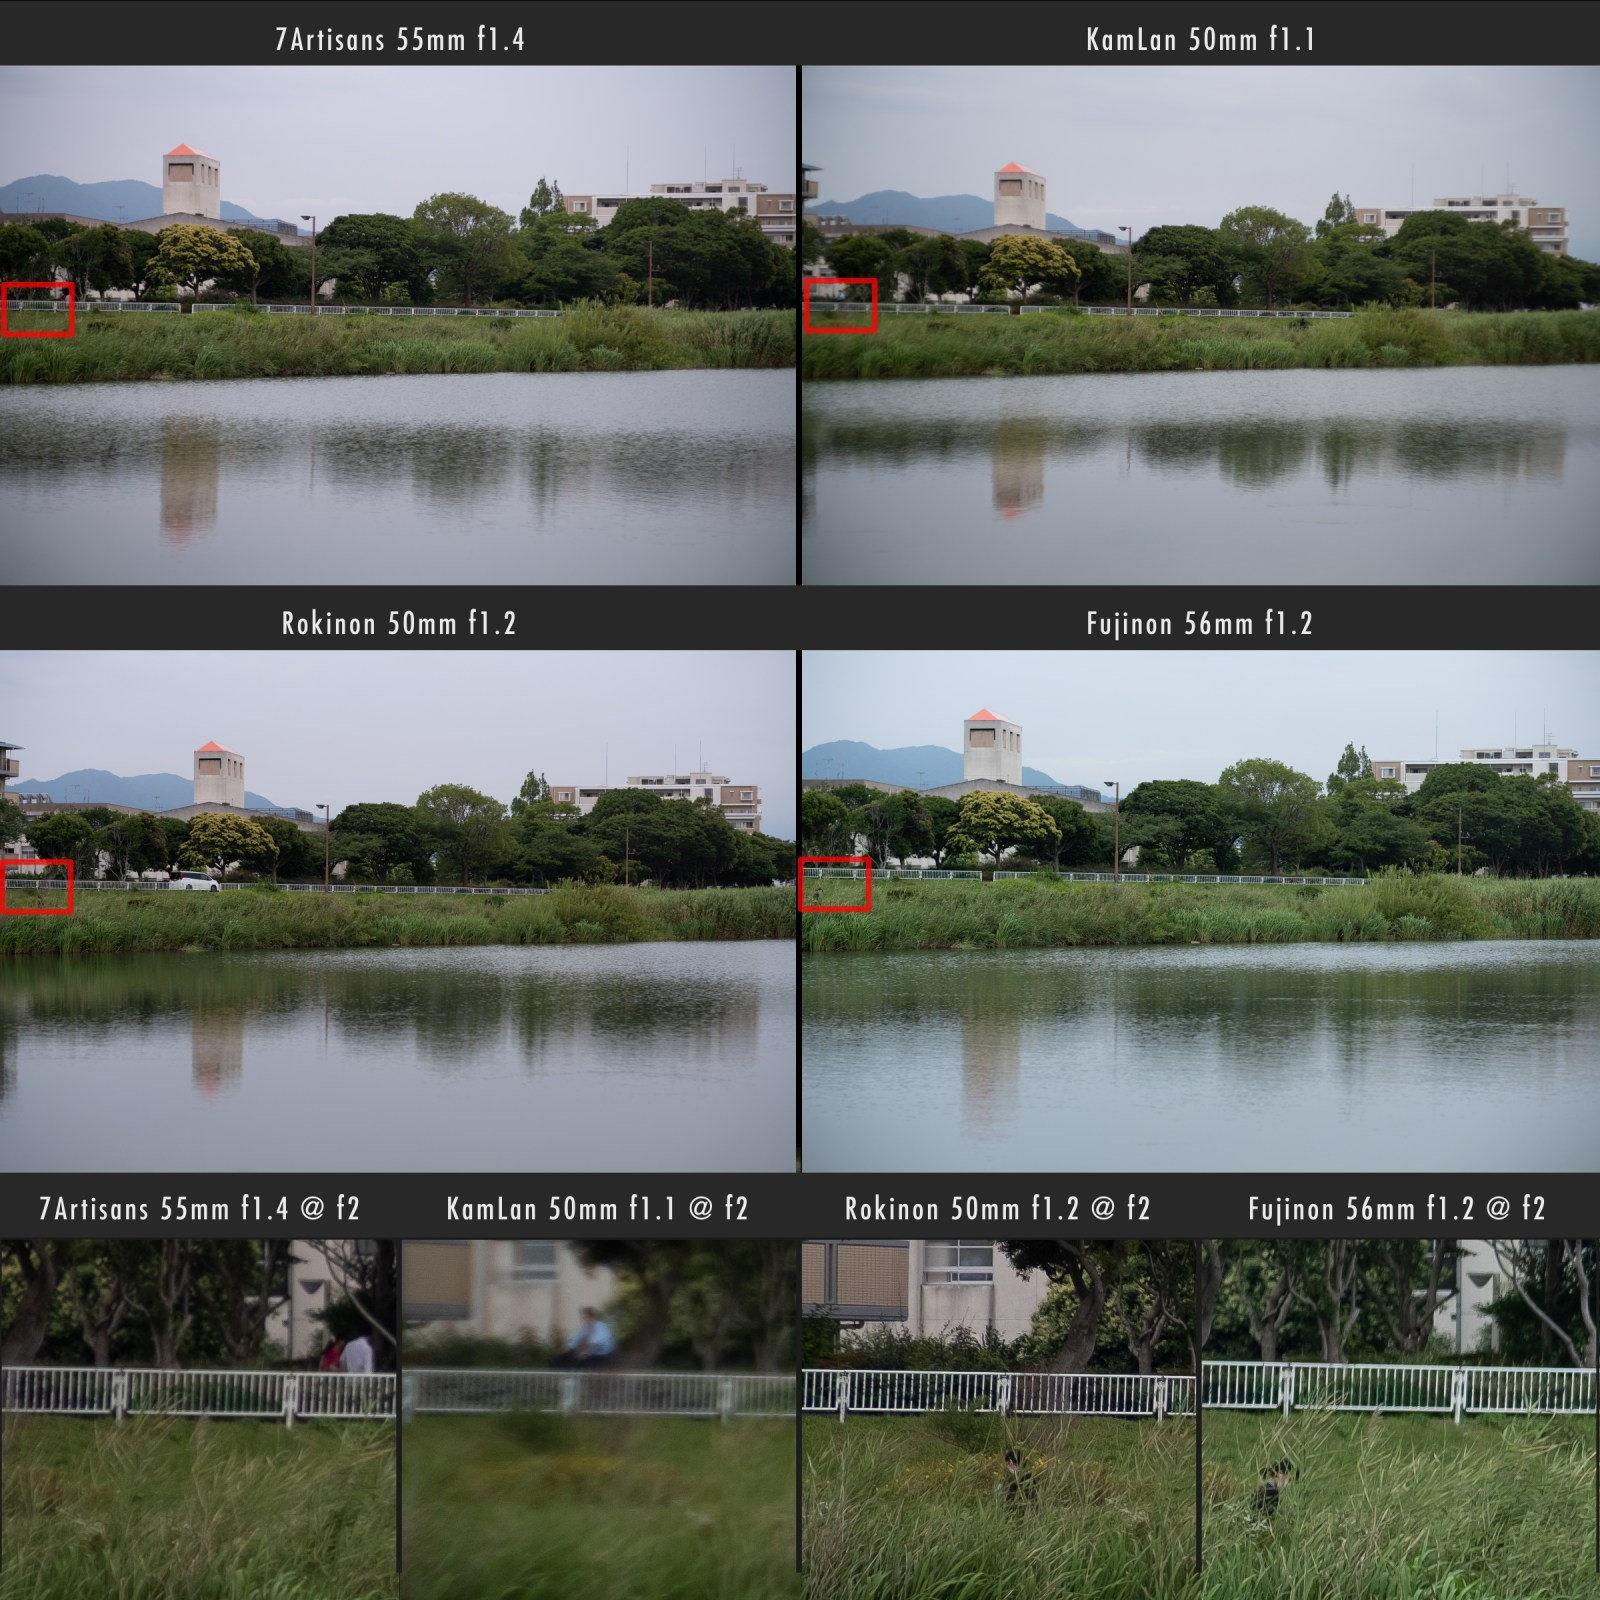 Kamlan 50mm f1.1 vs 7Artisans 55mm f1.4 vs Rokinon 50mm f1.2 Edge Sharpness Comparison